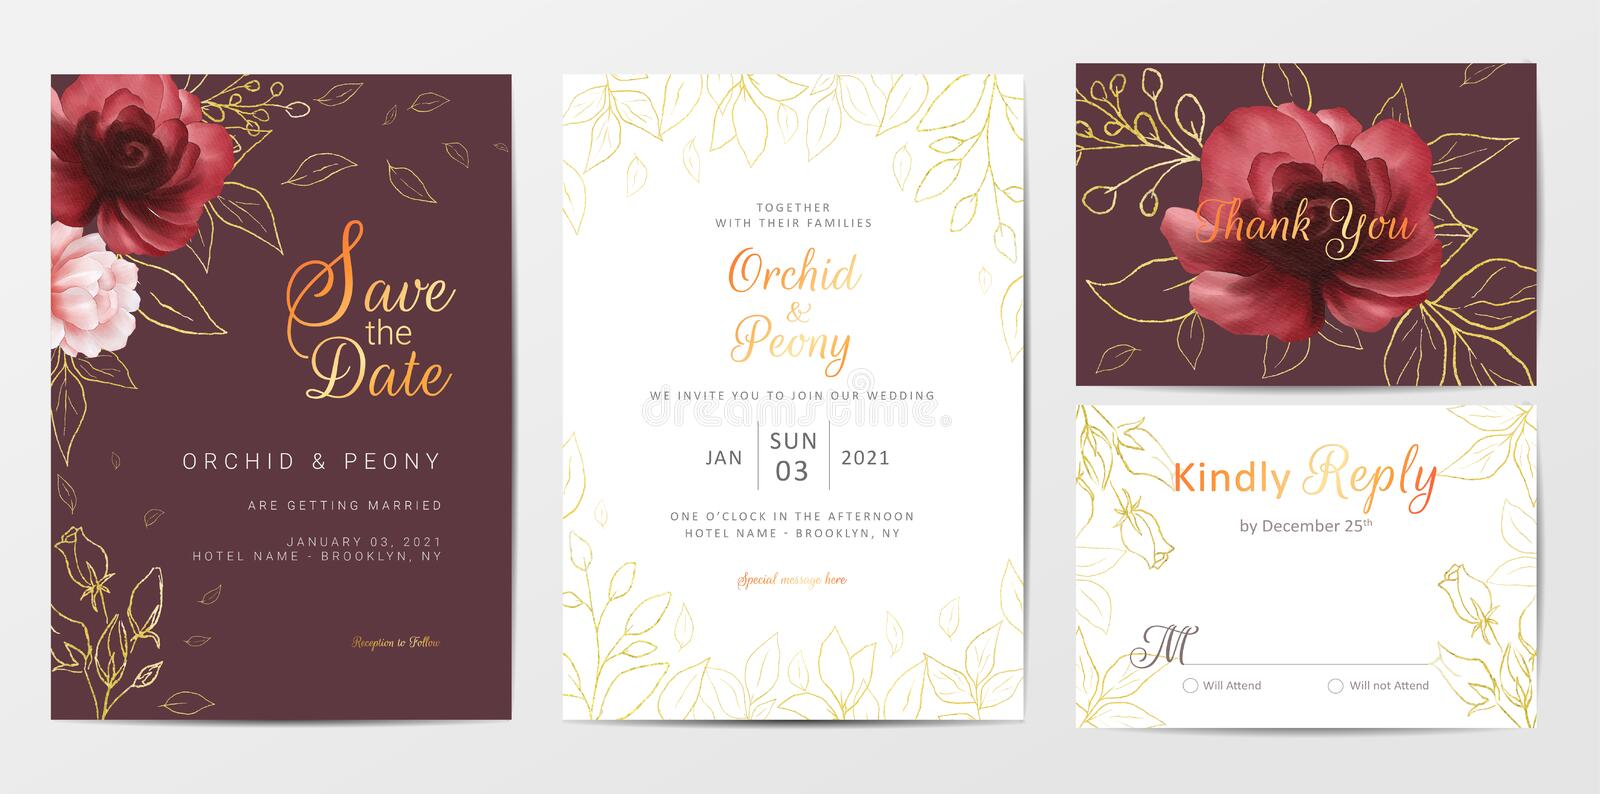 Elegant golden flowers wedding invitation cards template set. Fully editable vector template, save the date, invitation, greeting, thank you, and rsvp cards stock illustration